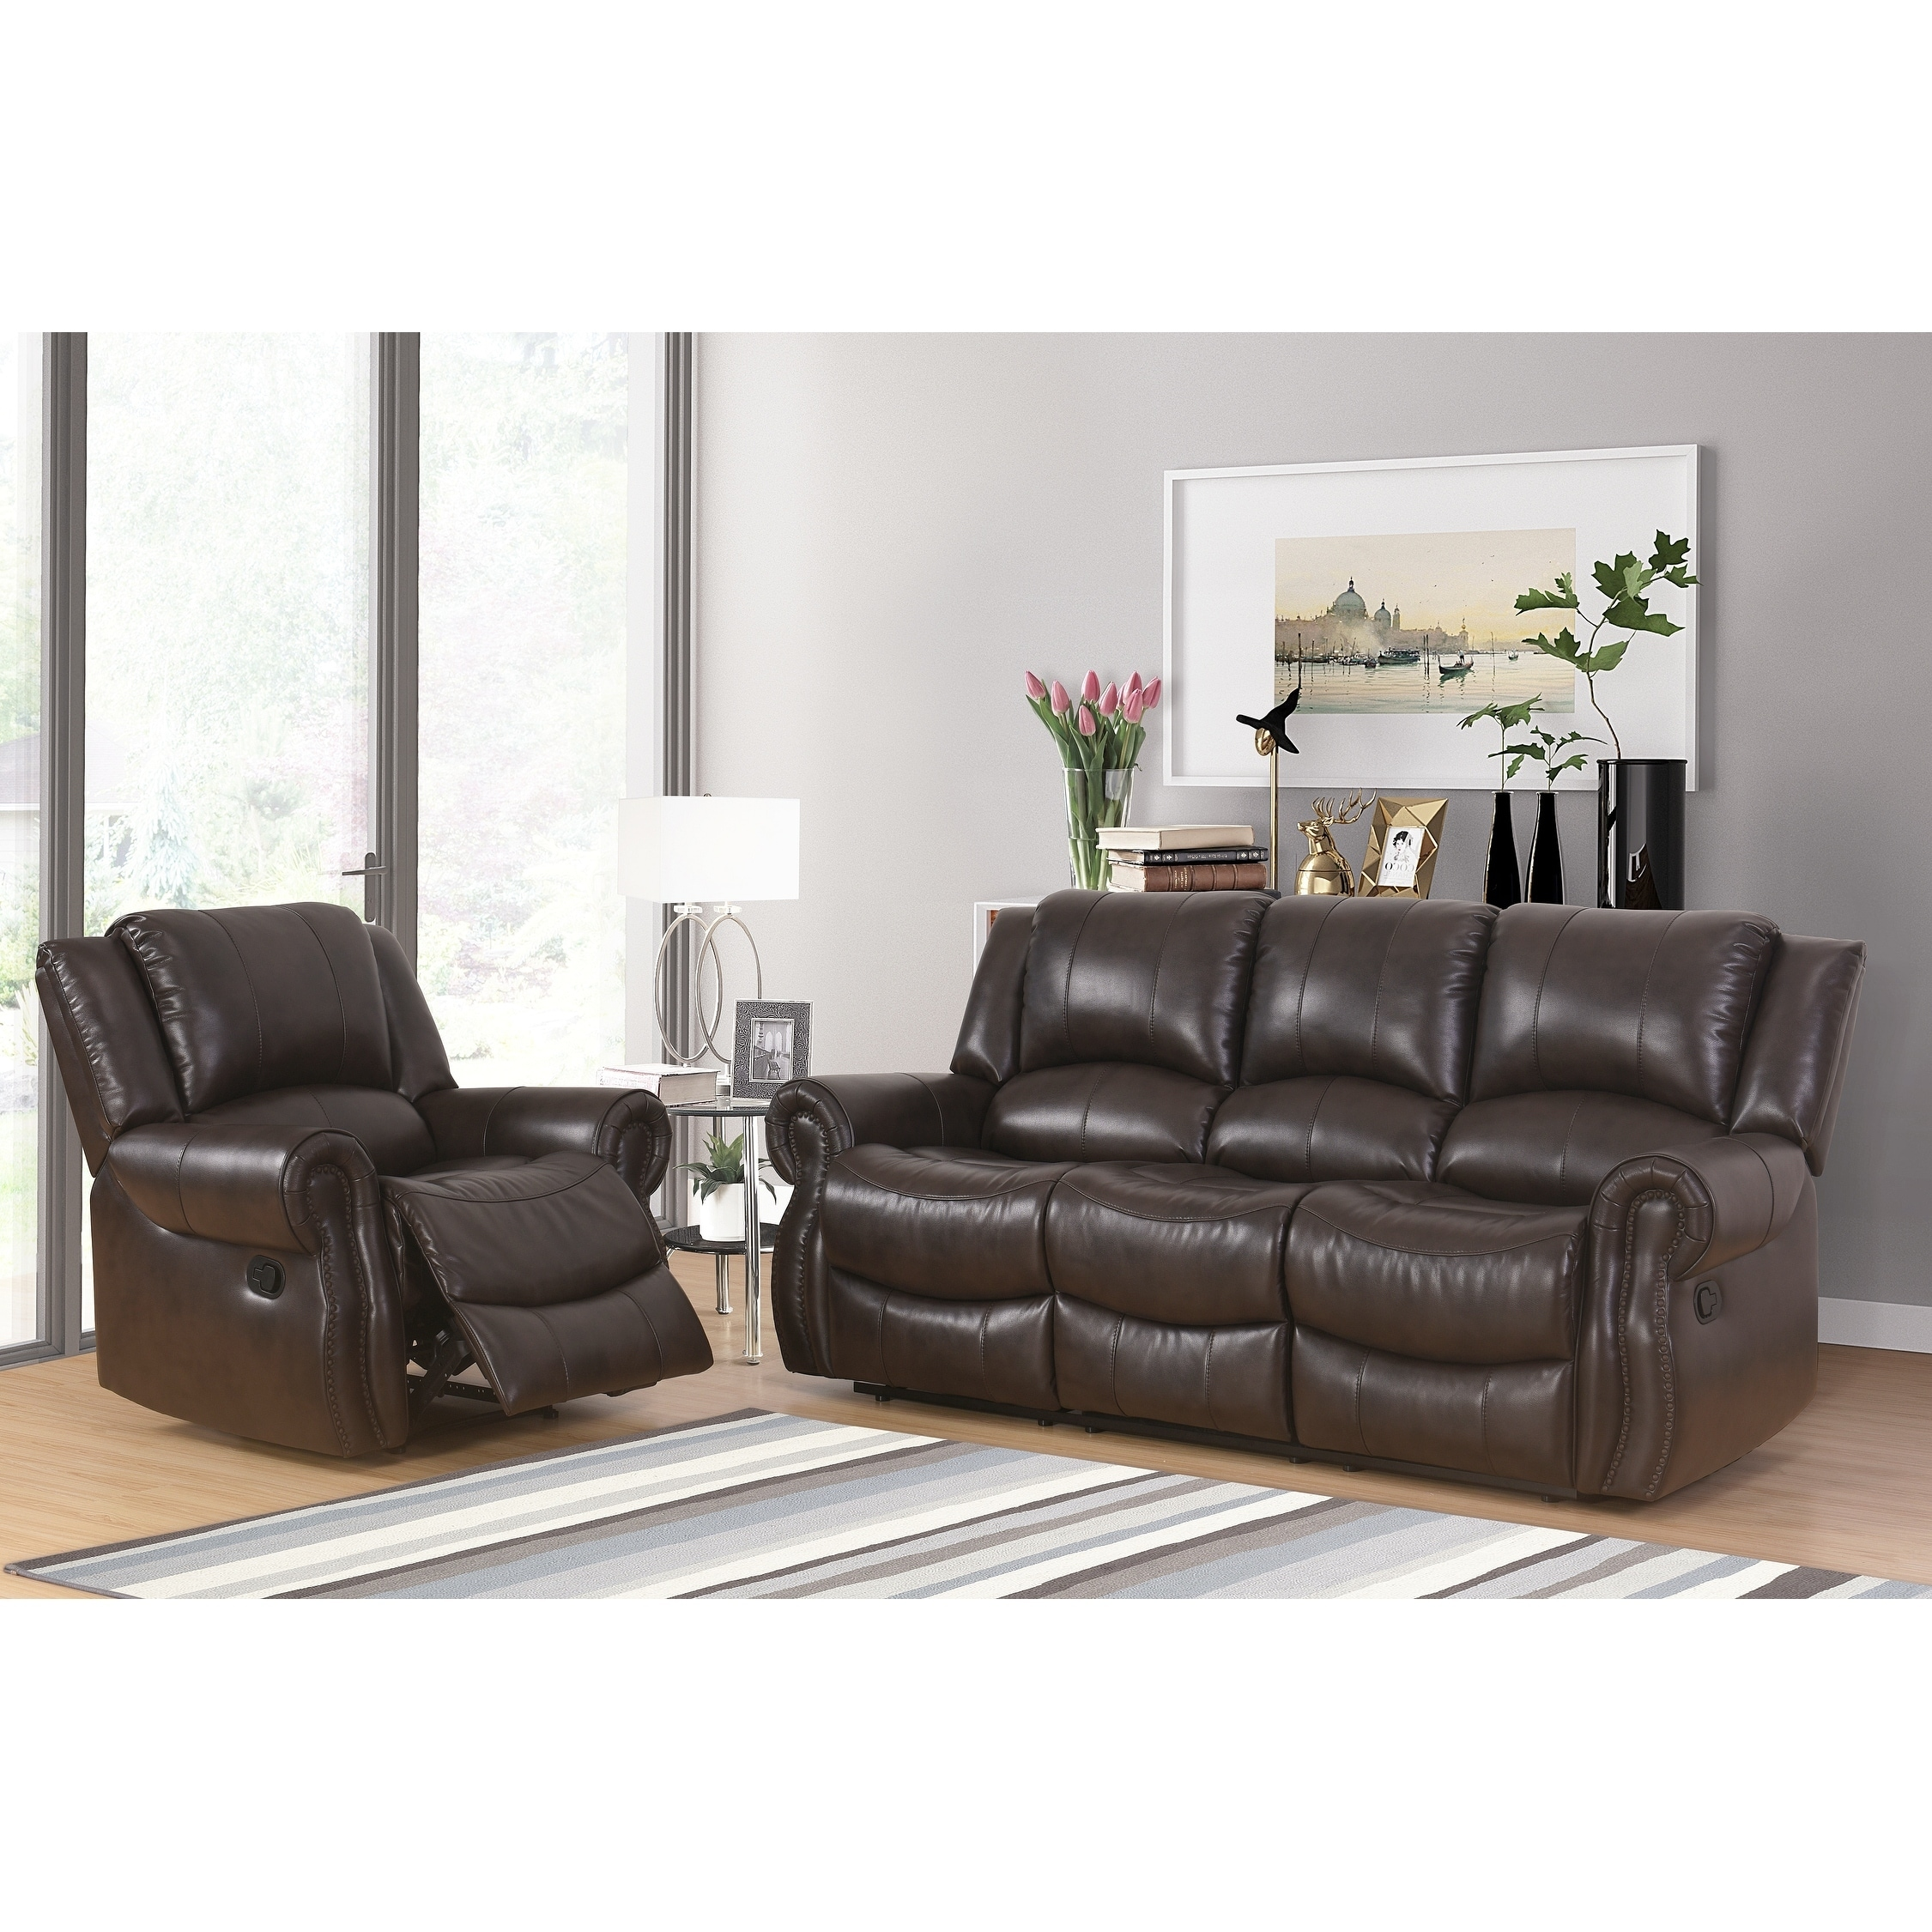 Abbyson Bradford Brown 2 Piece Faux Leather Living Room Set - Free ...